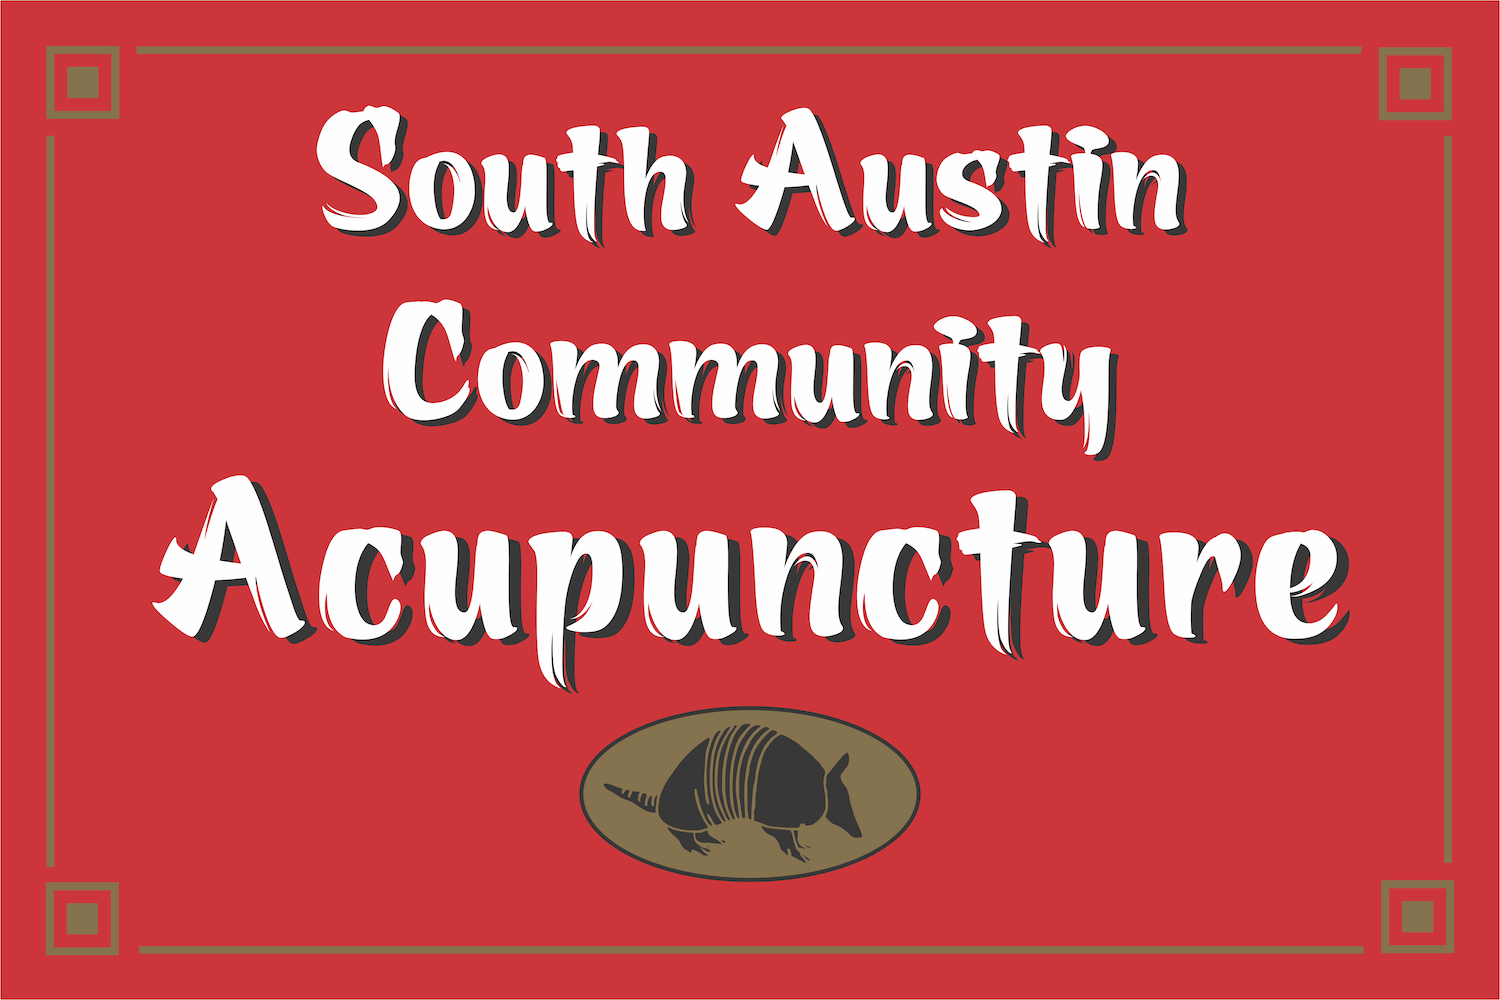 South Austin Community Acupuncture Sign